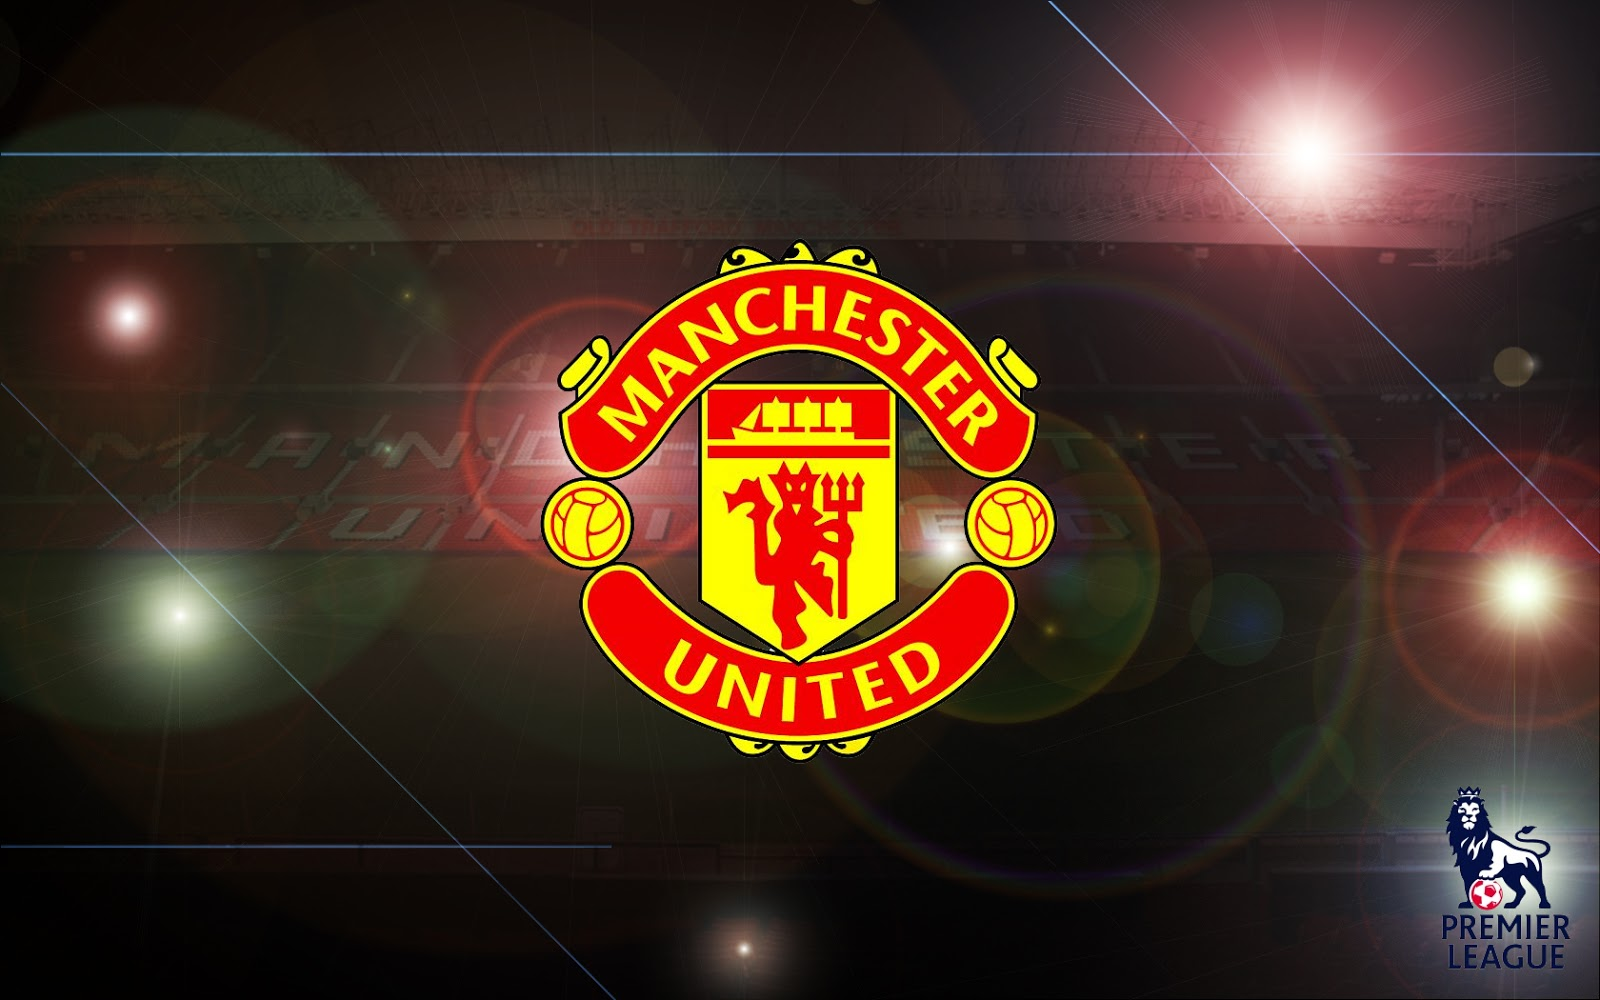 Wallpaper Real Madrid Hd Manchester United Logo Wallpapers Hd Collection Free